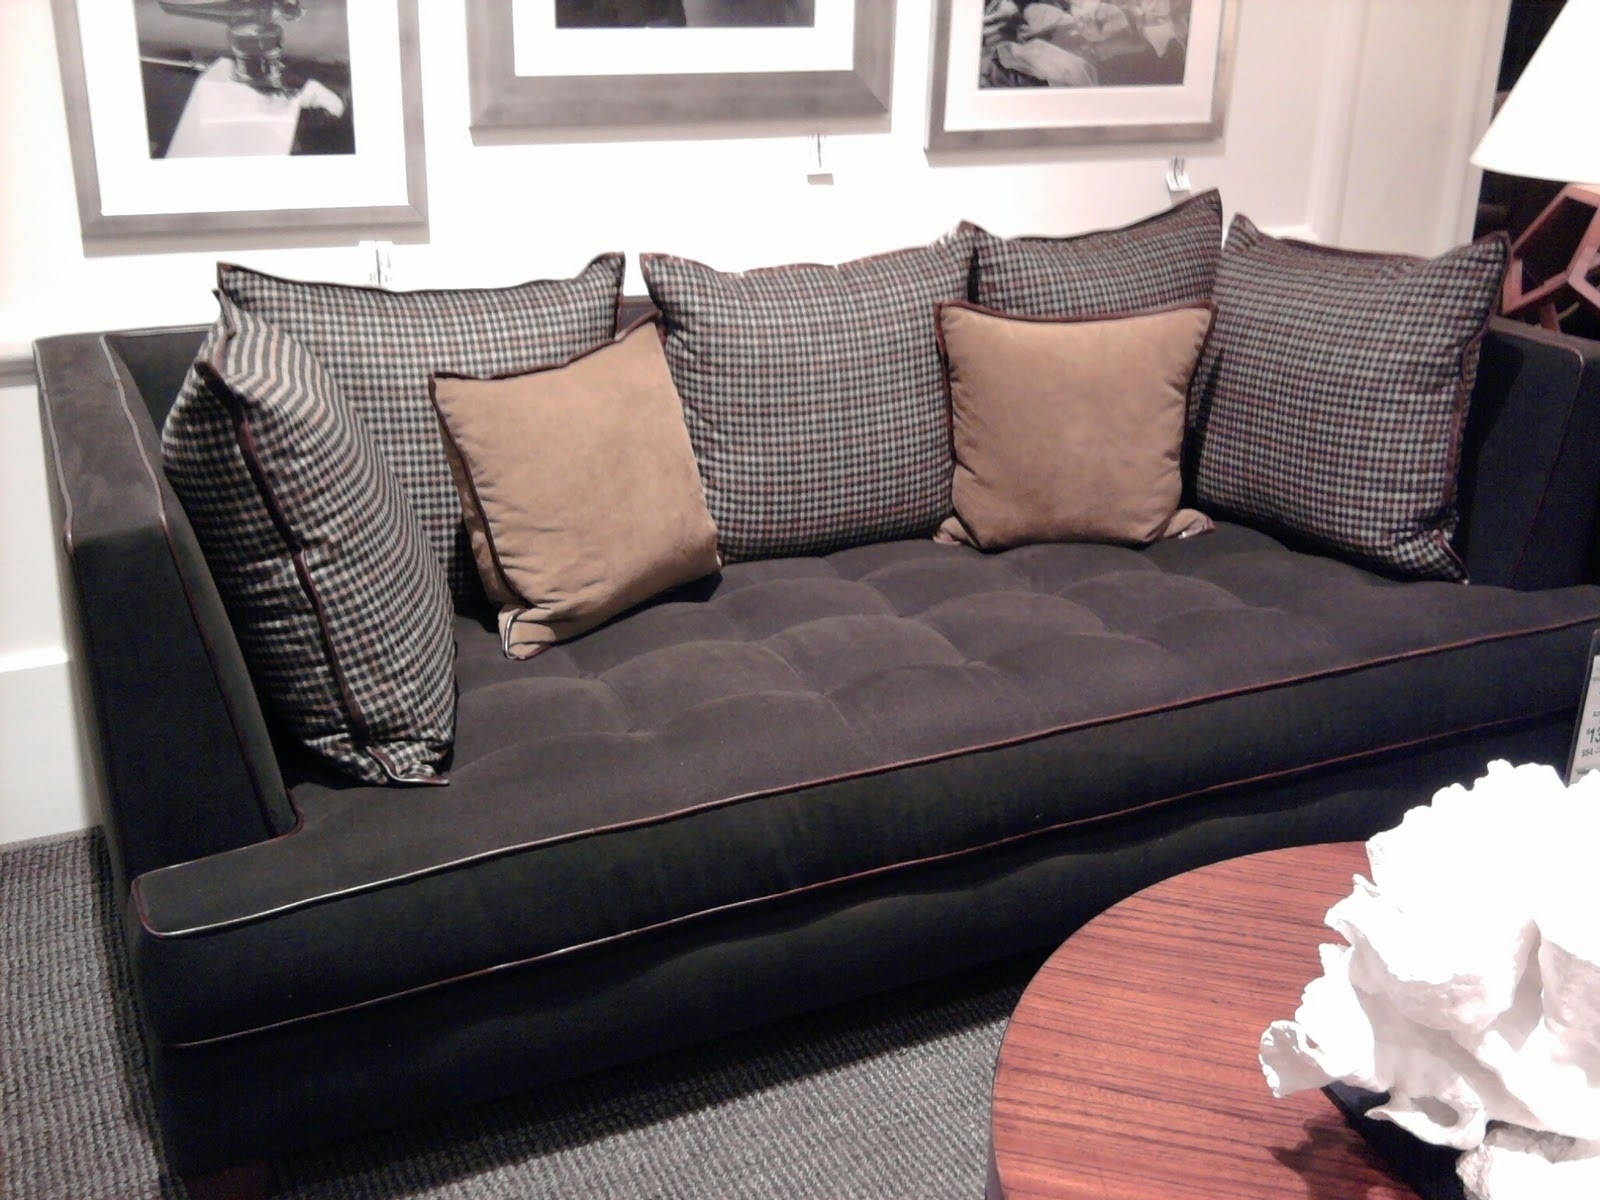 Couch: Concepts Deep Cushion Couch Extra Deep Couches, Cushy Couches Pertaining To Deep Cushion Sofas (View 3 of 10)